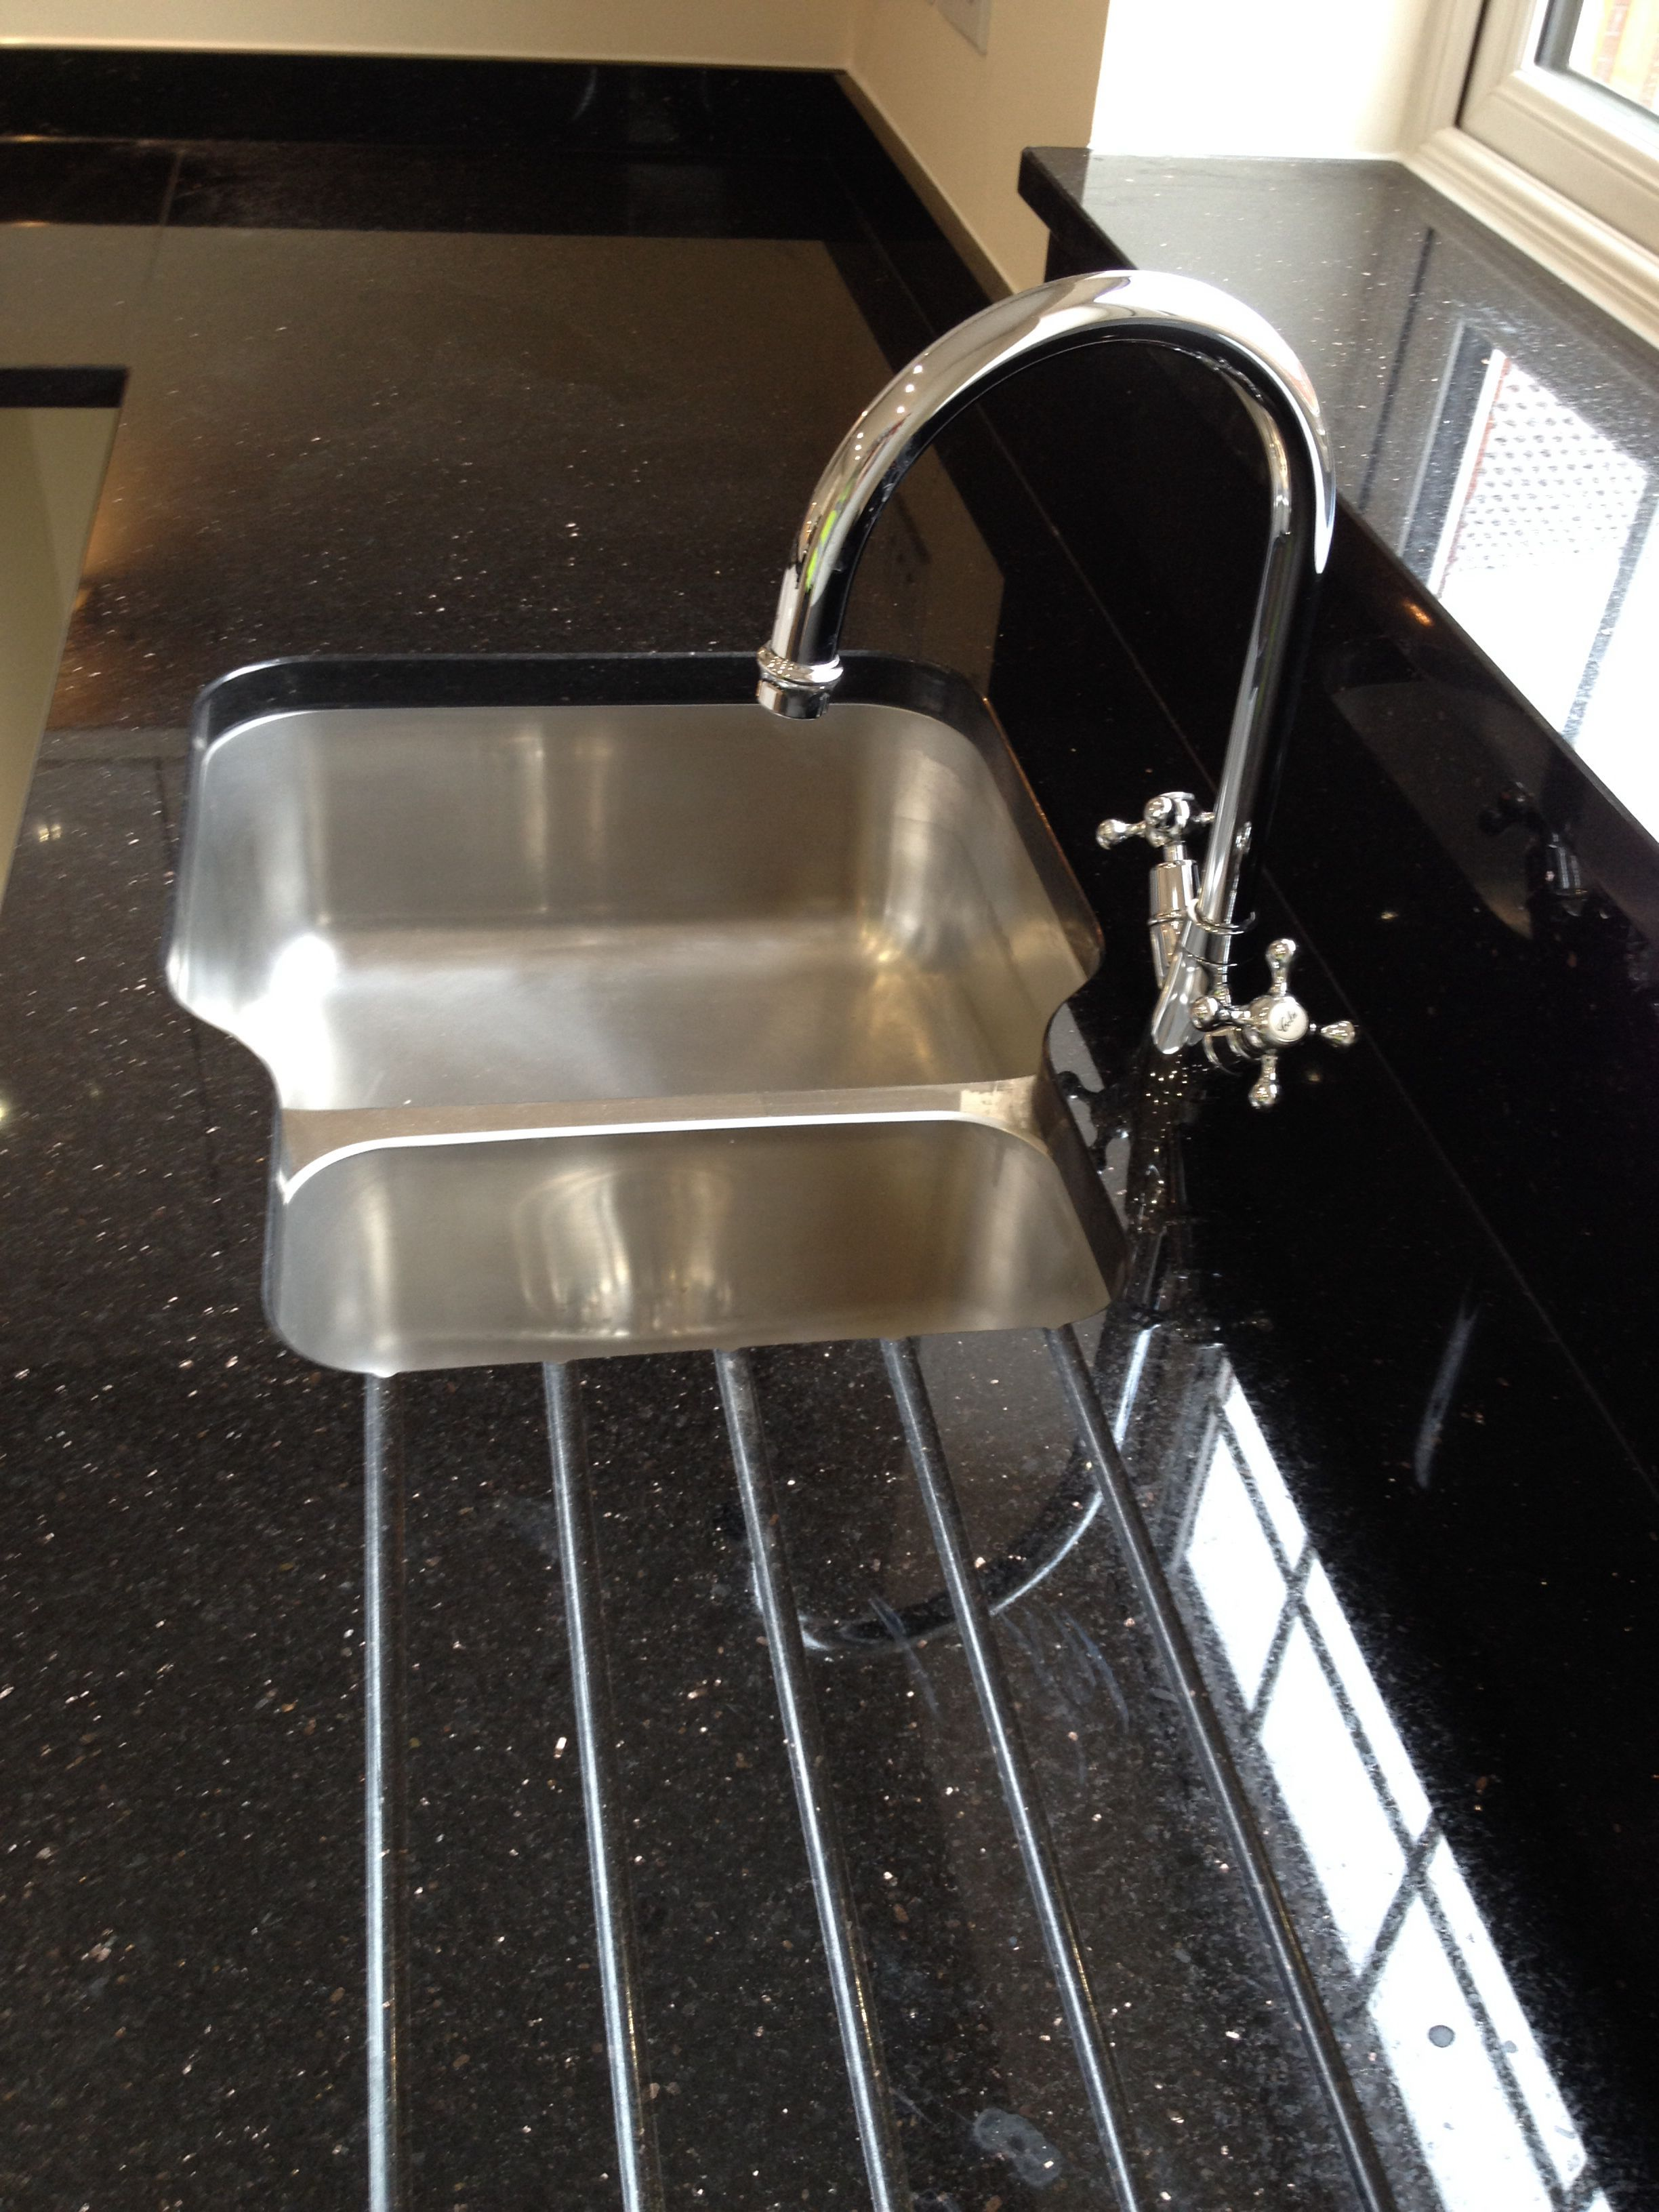 Star Galaxy Granite With Undermounted Sink For A Client In North Wiltshire Sink Undermount Sink Kitchen Fittings